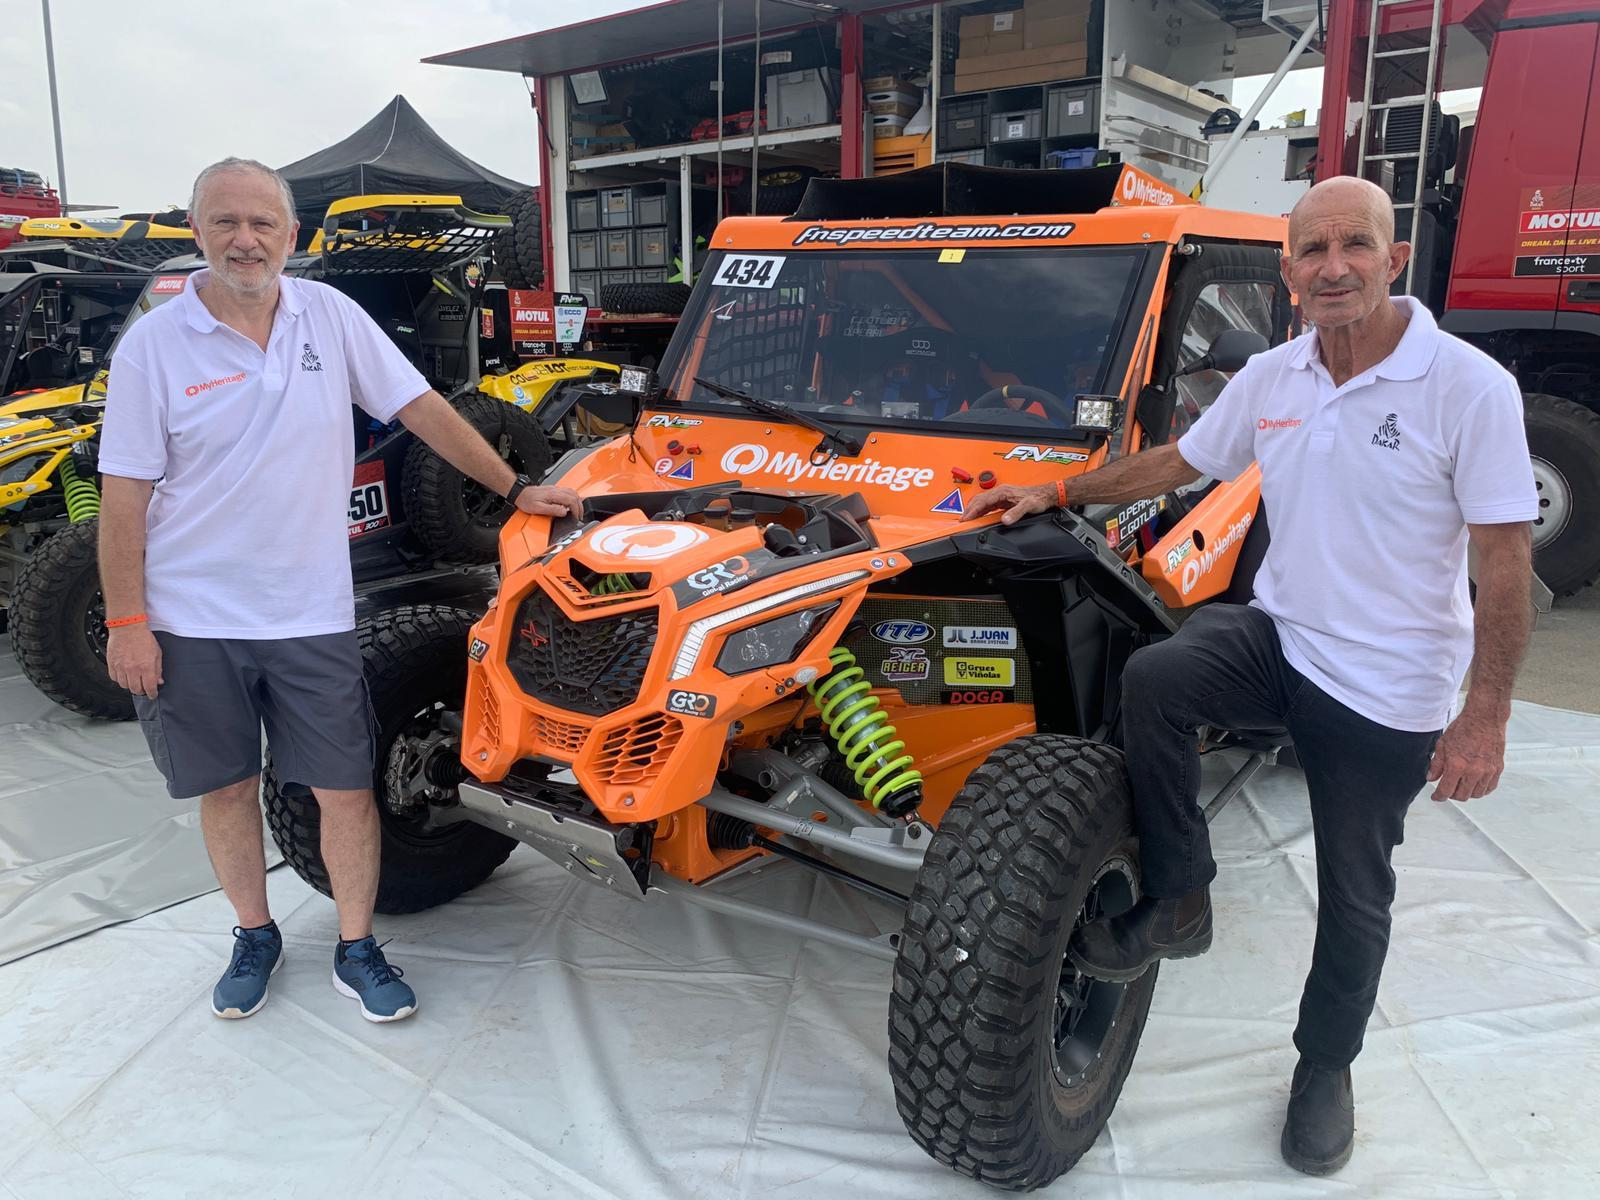 Co-driver Charly Gotlib (left) and driver Danny Pearl (right)